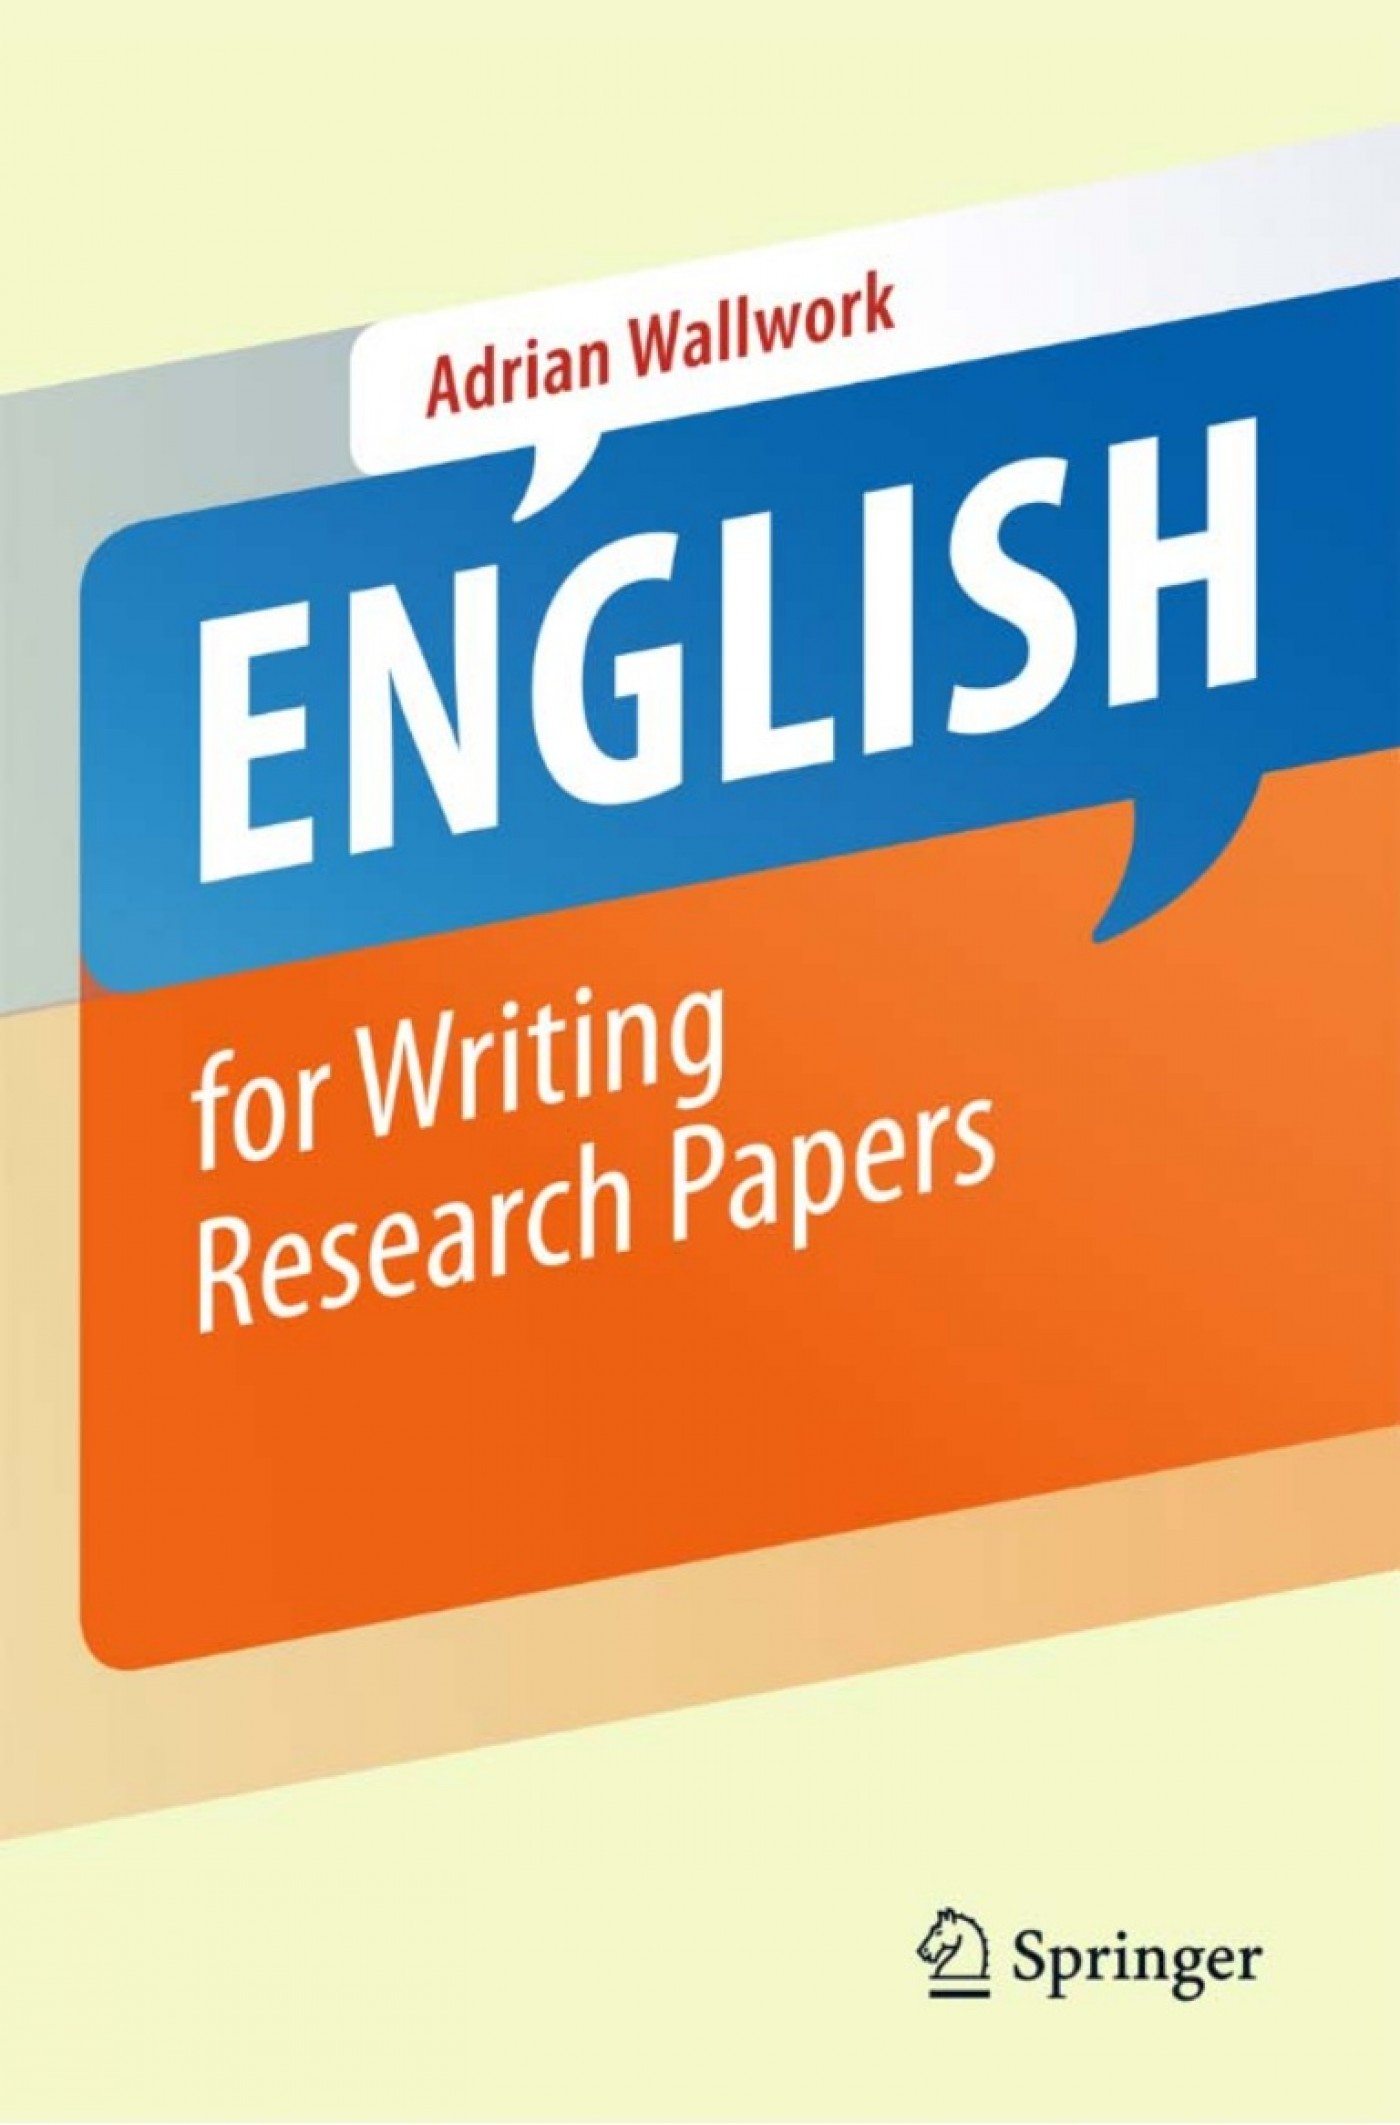 019 Englishforwritingresearchpapers Conversion Gate01 Thumbnail Writing Research Striking Paper Papers A Complete Guide 16th Edition Pdf 15th 1400